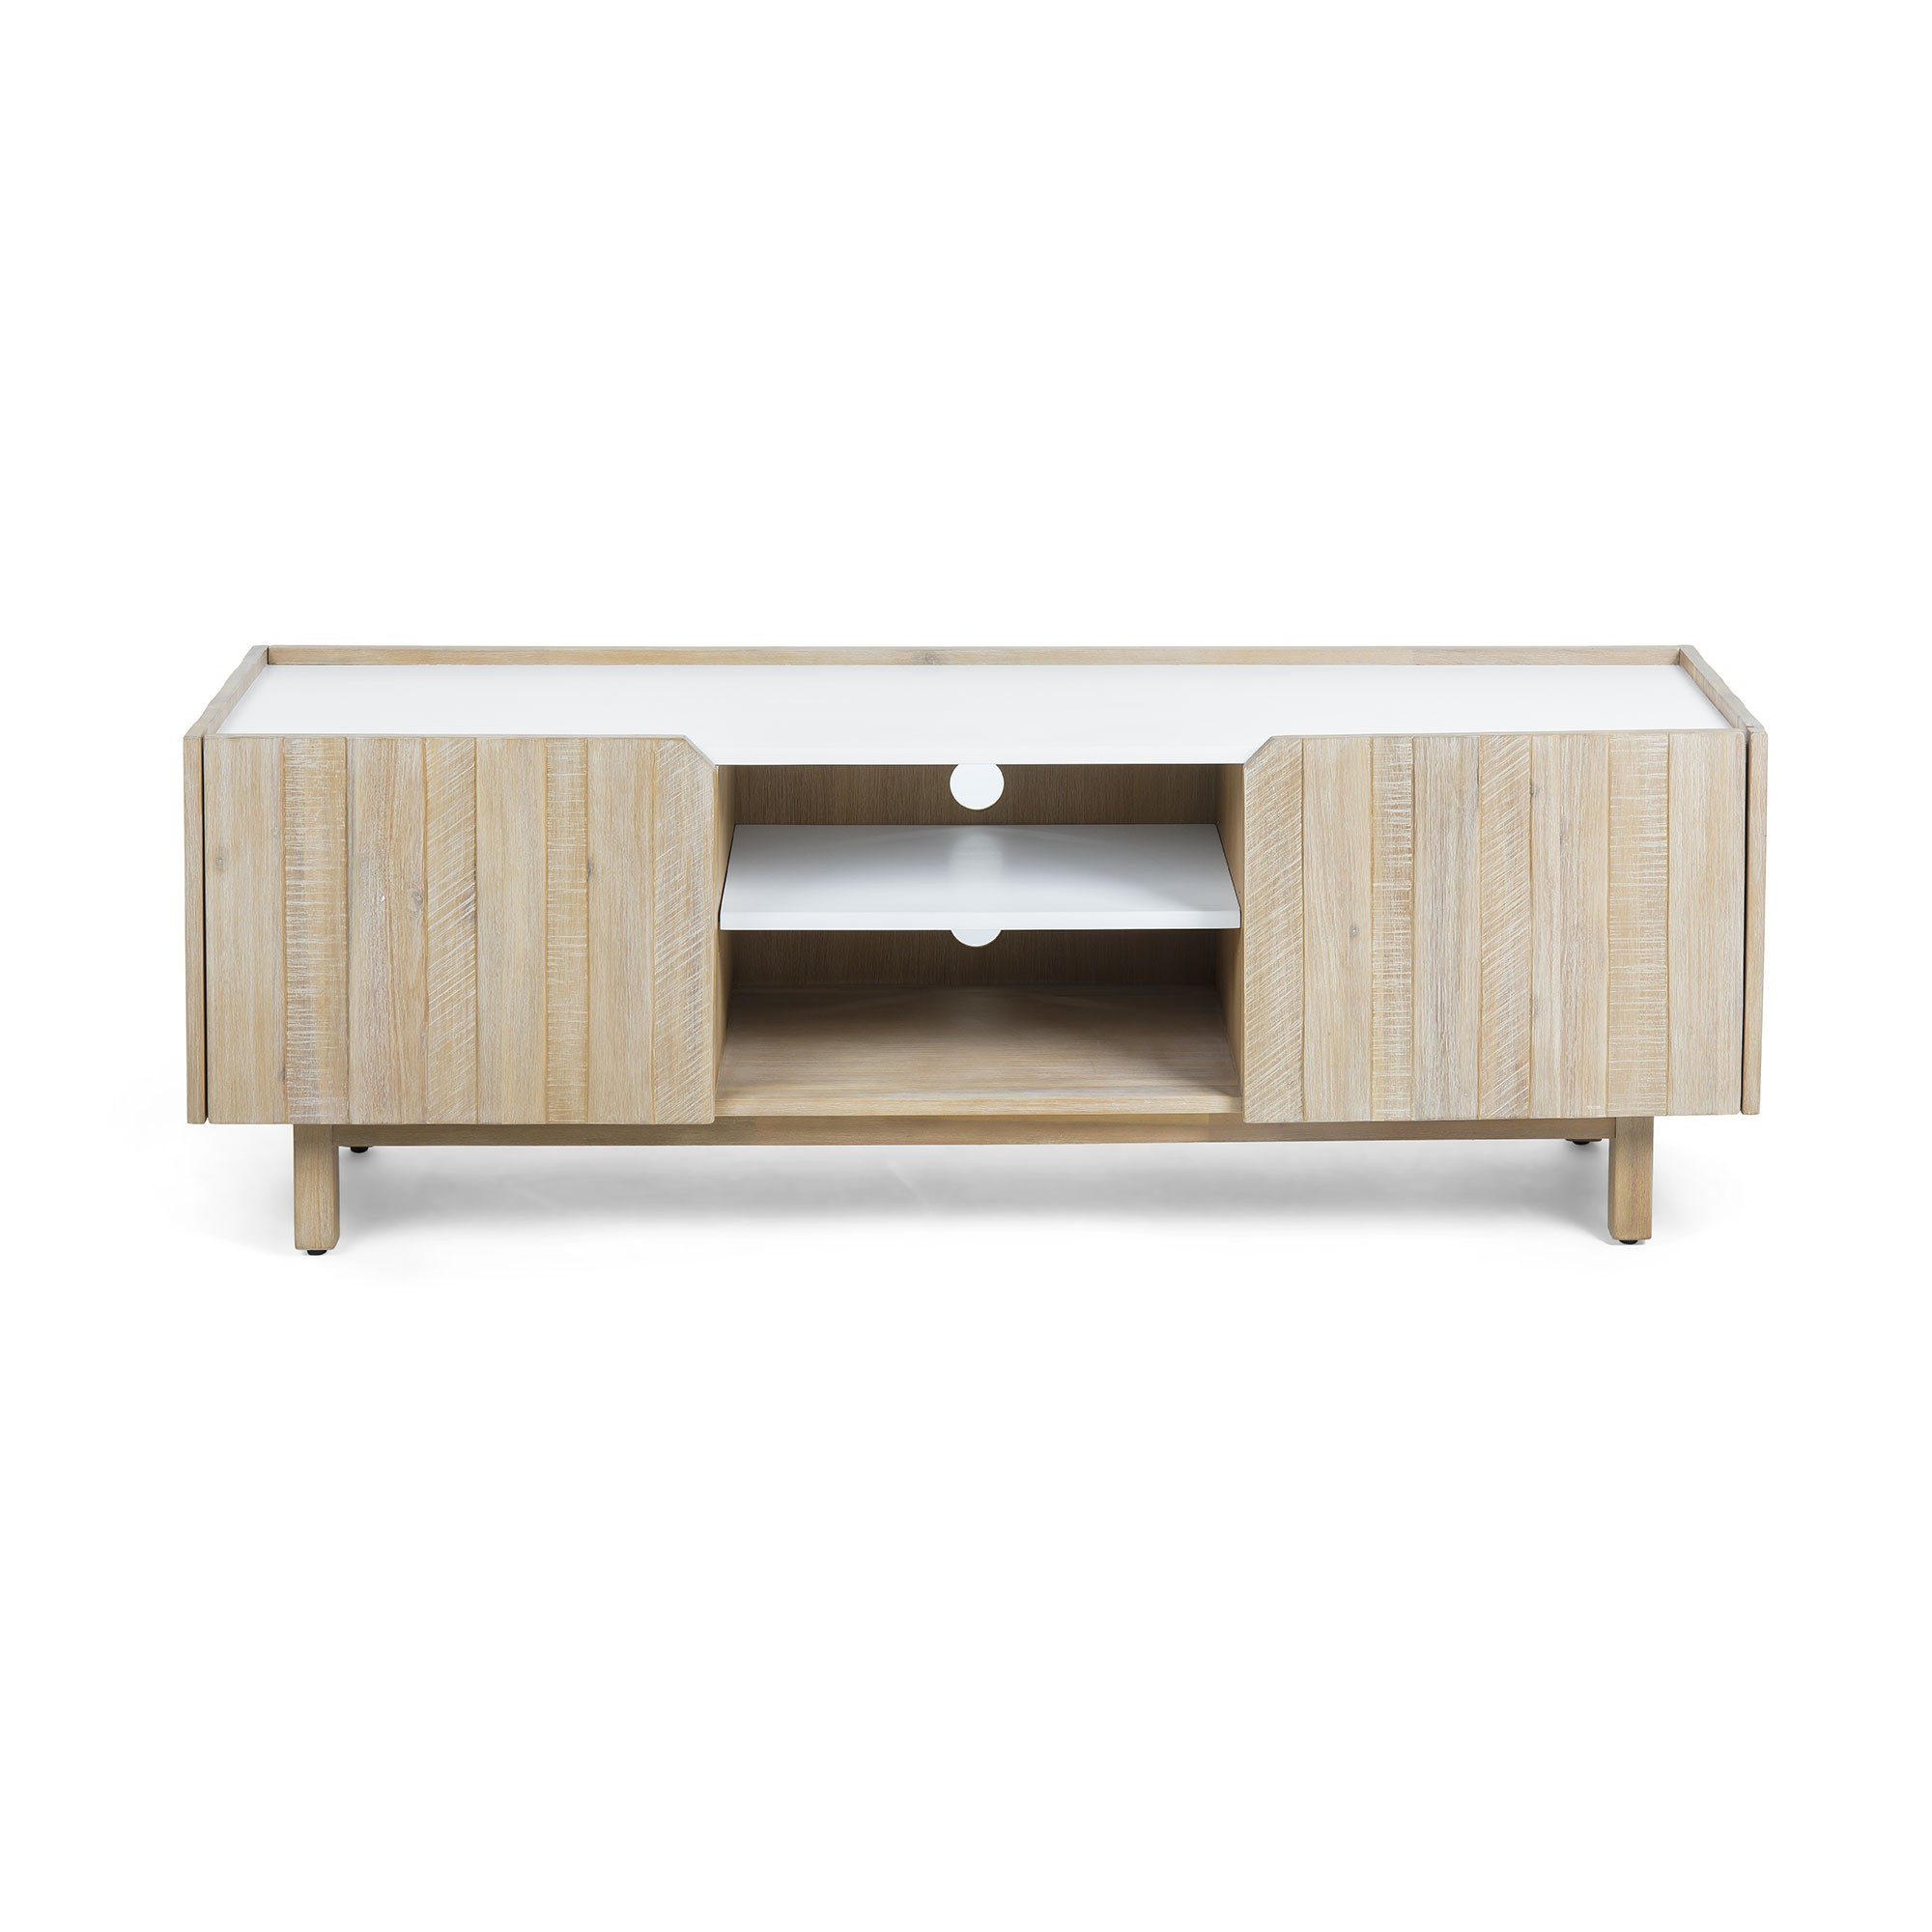 Taika Acacia Timber TV Unit, 160cm